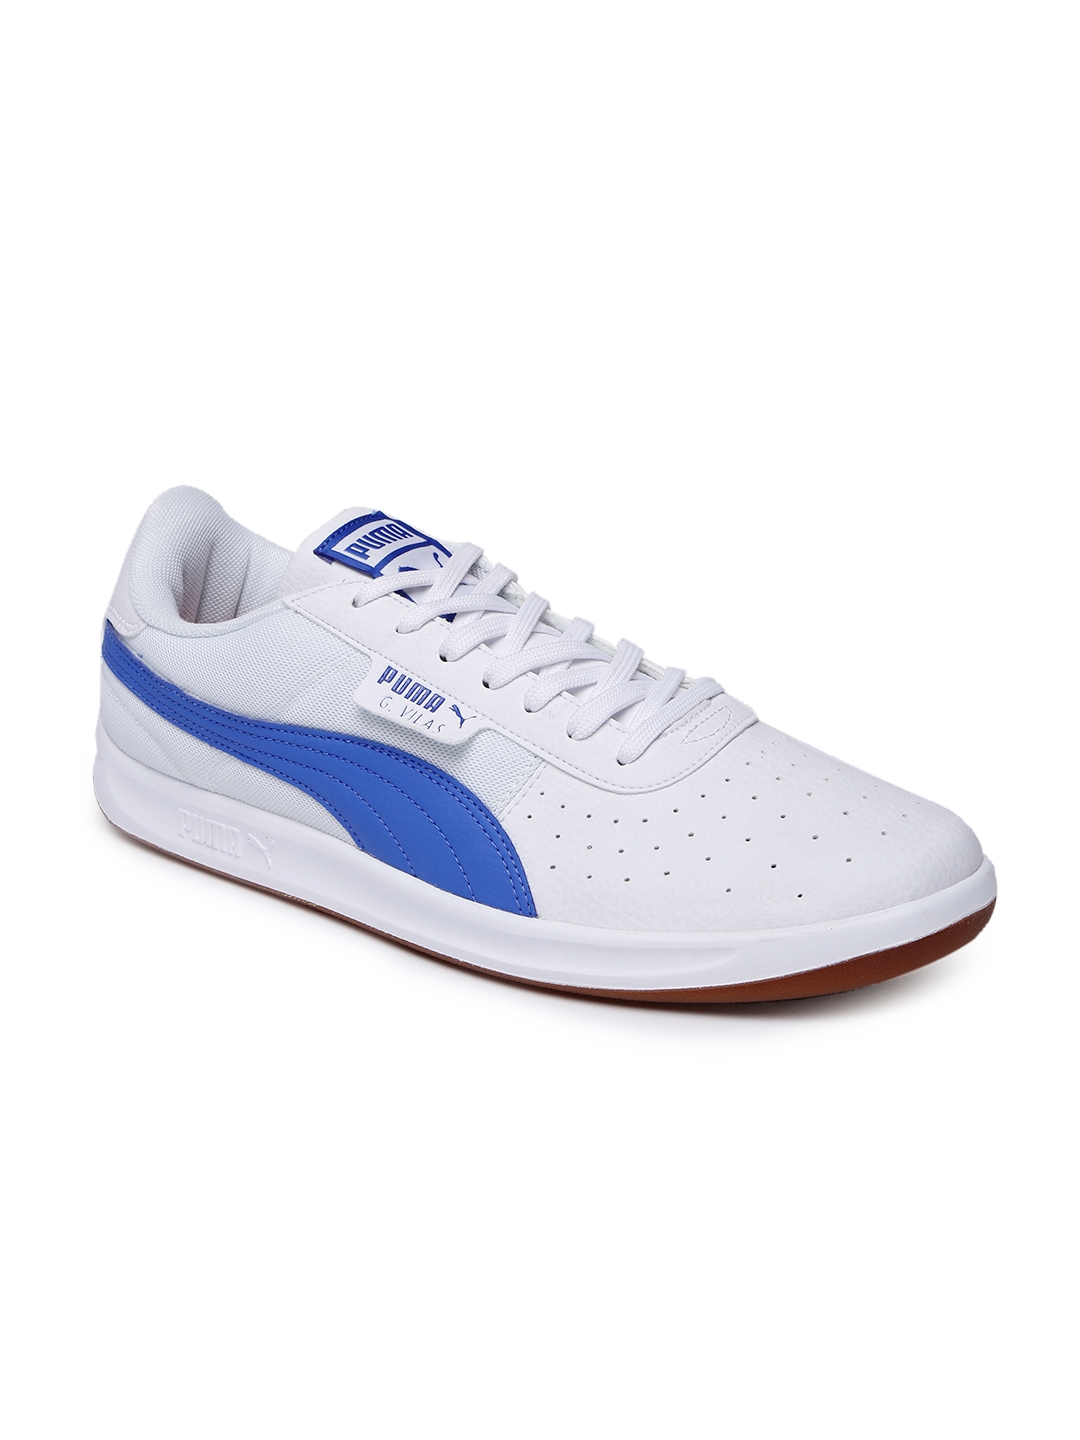 47681bca4fac Buy Puma Men G. Vilas 2 Core IDP White   Blue Sneakers - Casual ...